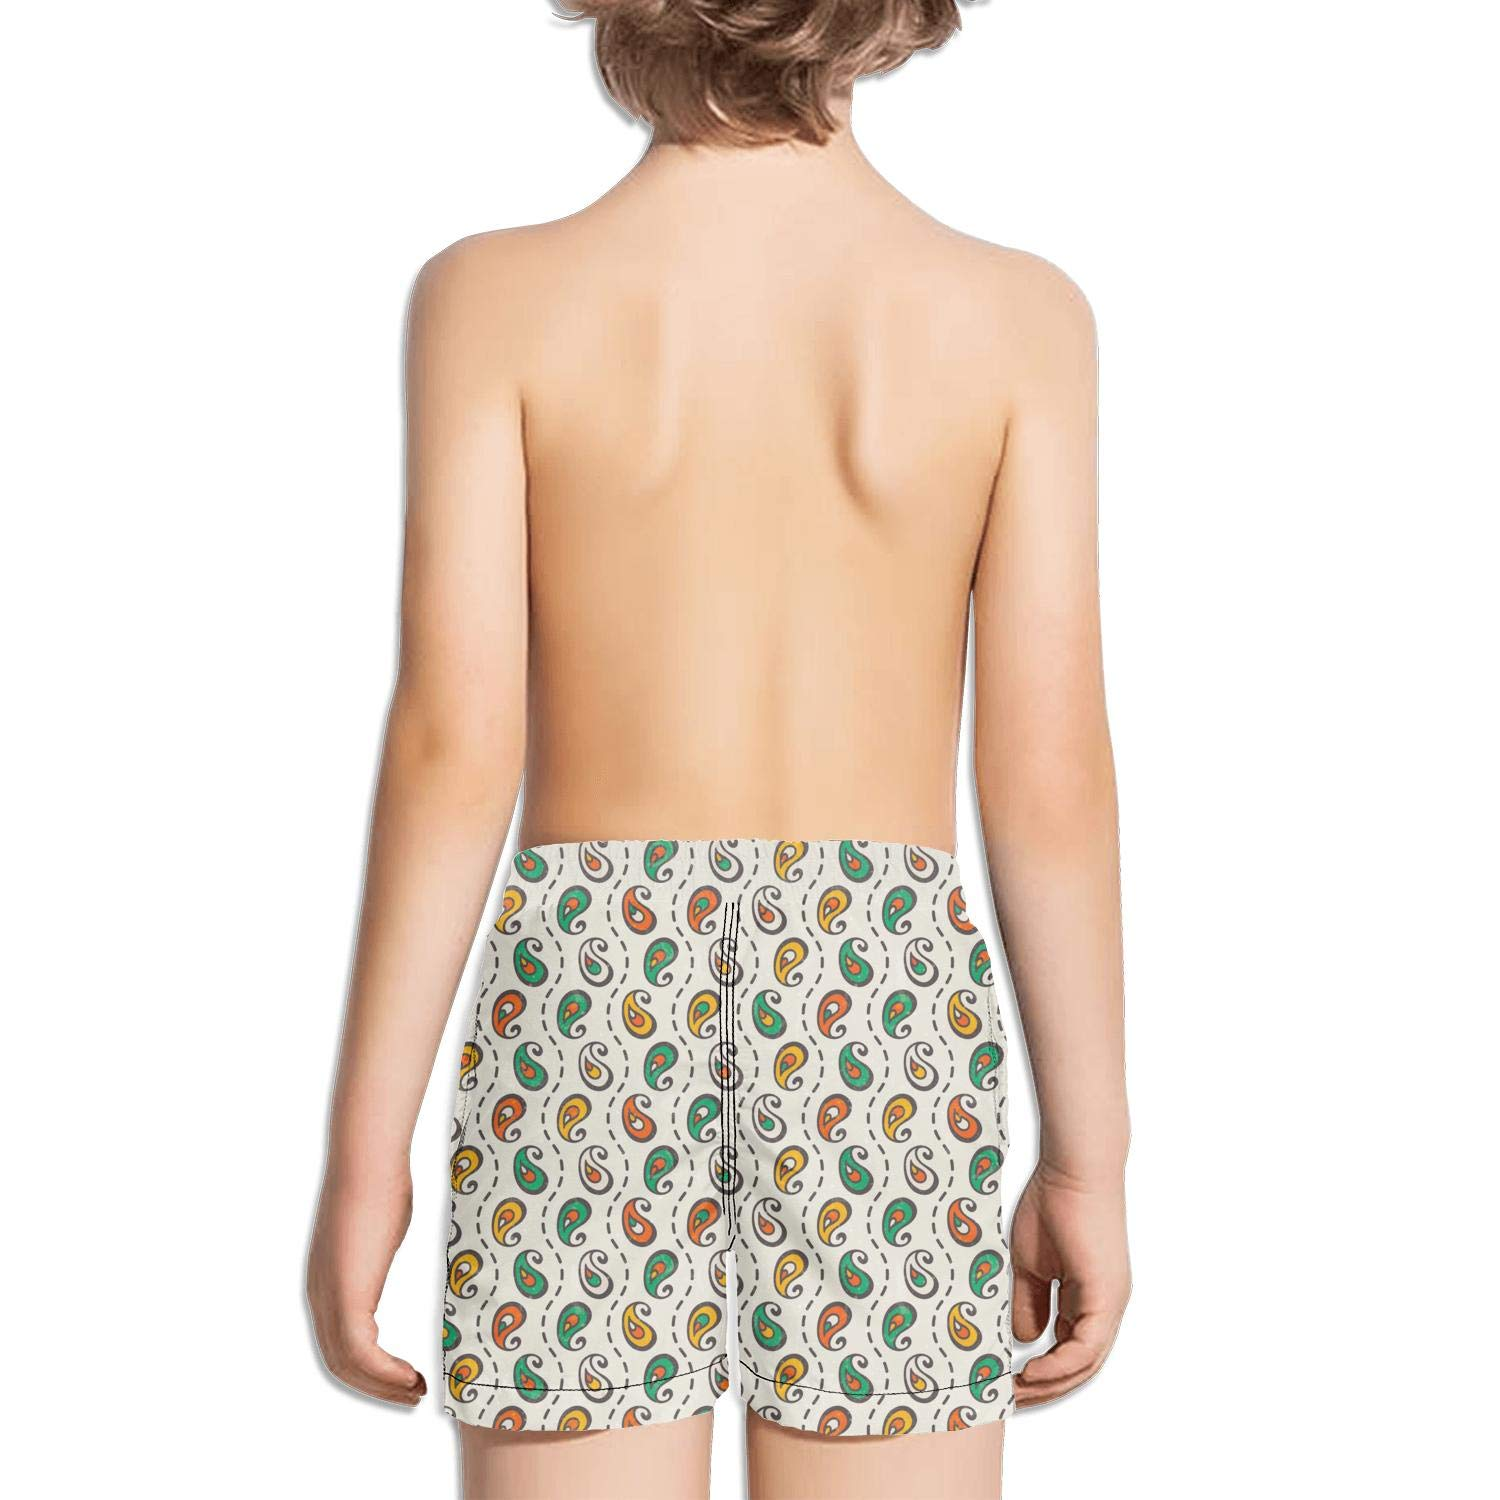 jhnkmmnc Retro Paisley Seamless Print Elastic Adjustable Stretch Board Swim Shorts